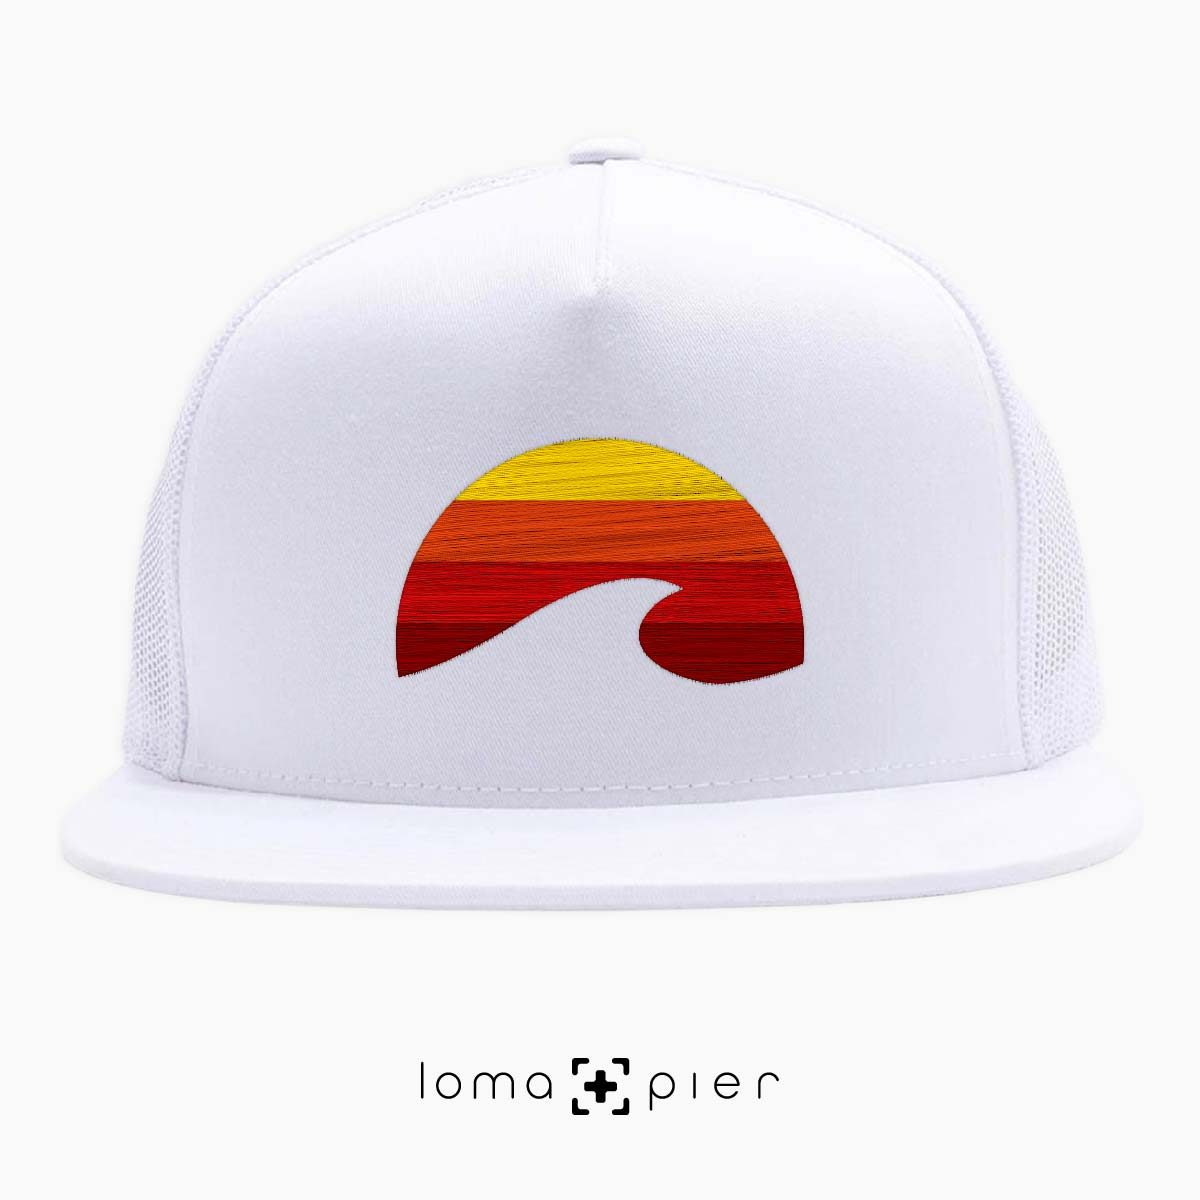 PACIFIC SUN manhattan beach netback hat in white by loma+pier hat store